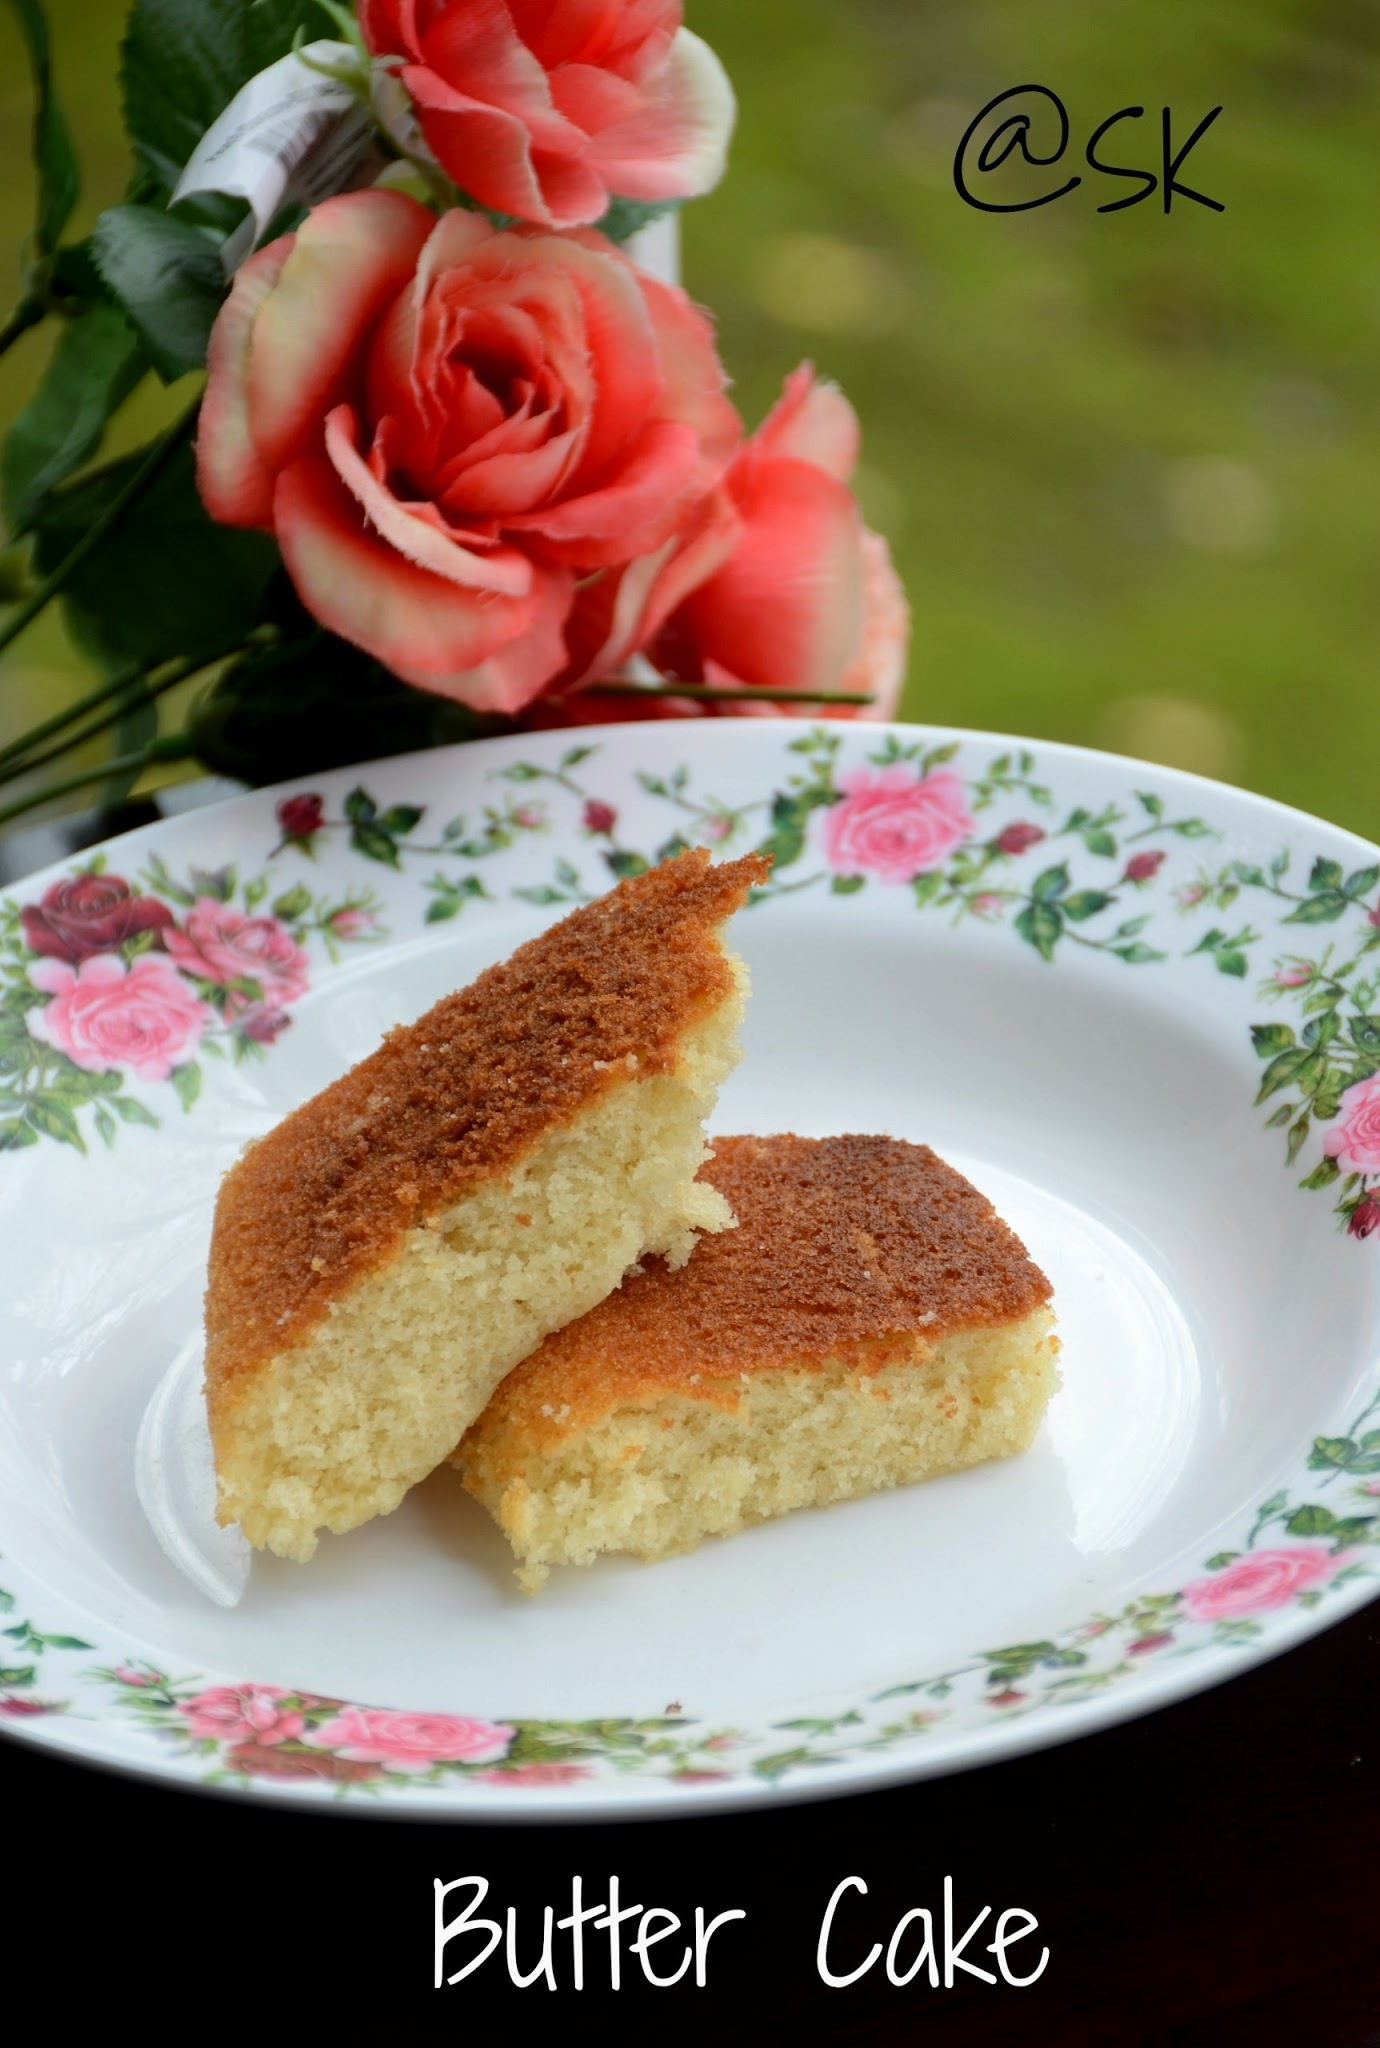 How to bake cake on a rice cooker - Butter cake - Step by step